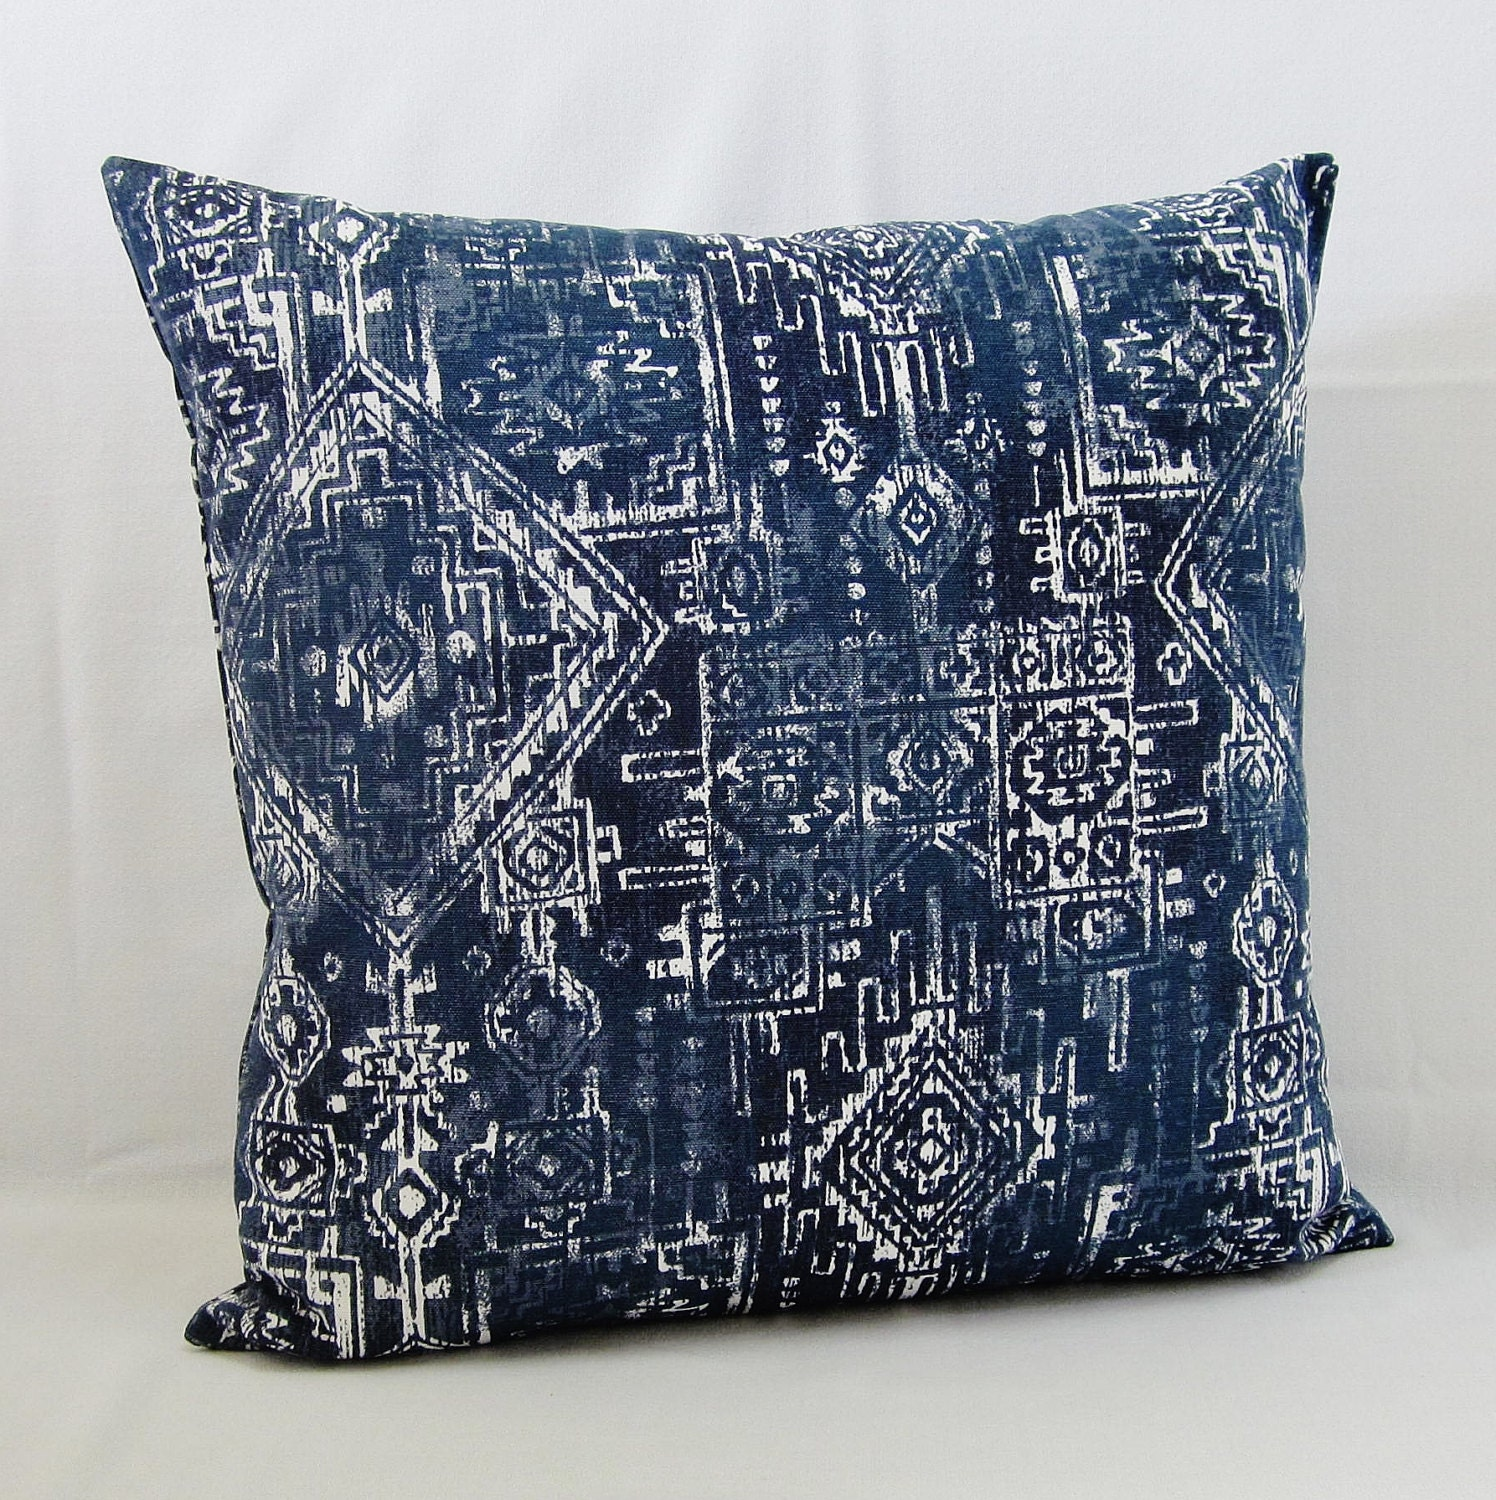 Blue Geometric Throw Pillows : Navy Blue Throw Pillow Cover Geometric Decorative Accent